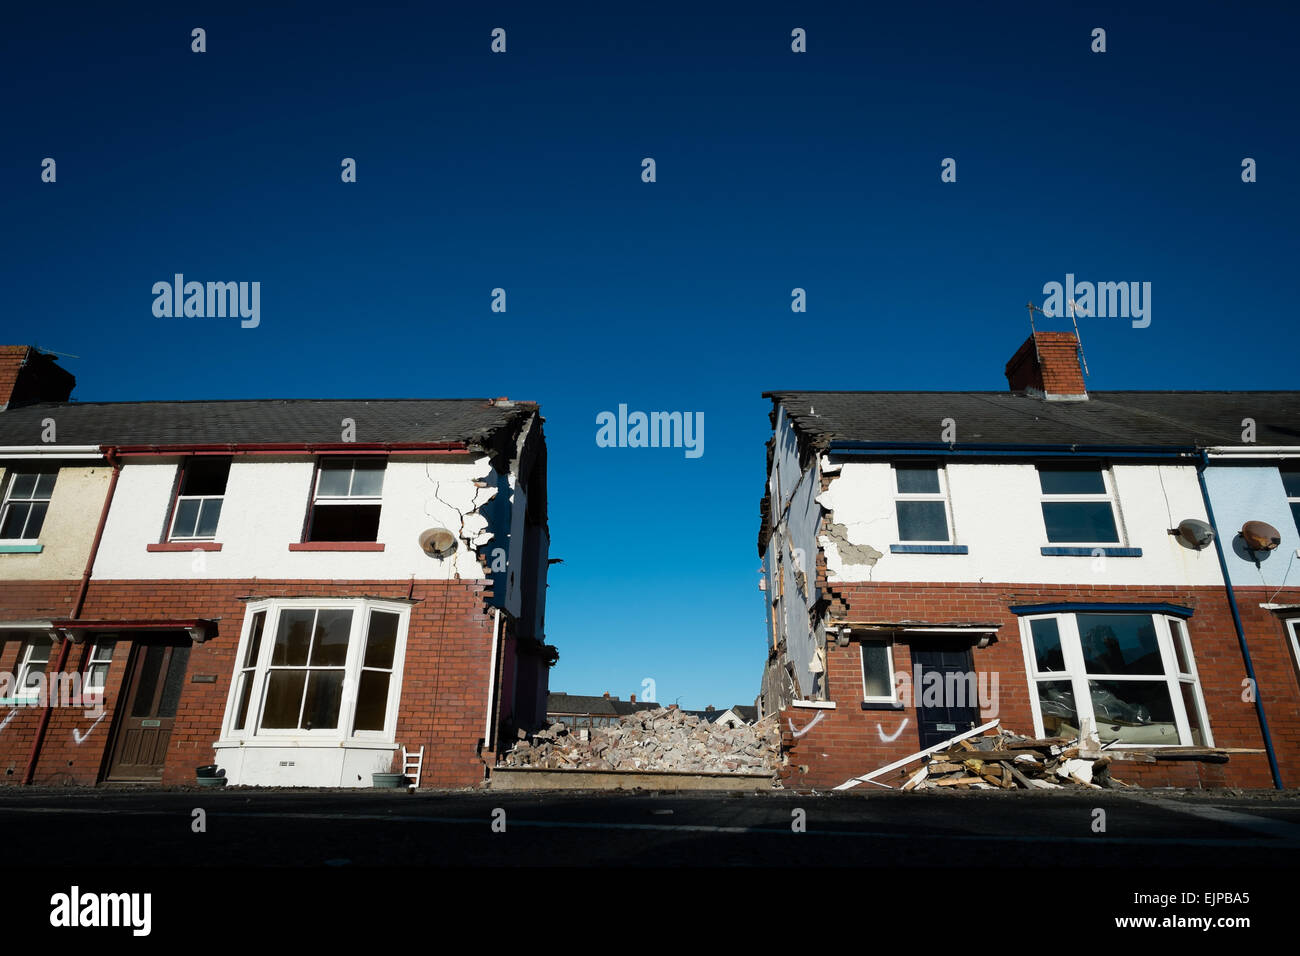 A gap in a terrace of houses where one home has been demolished, UK - Stock Image